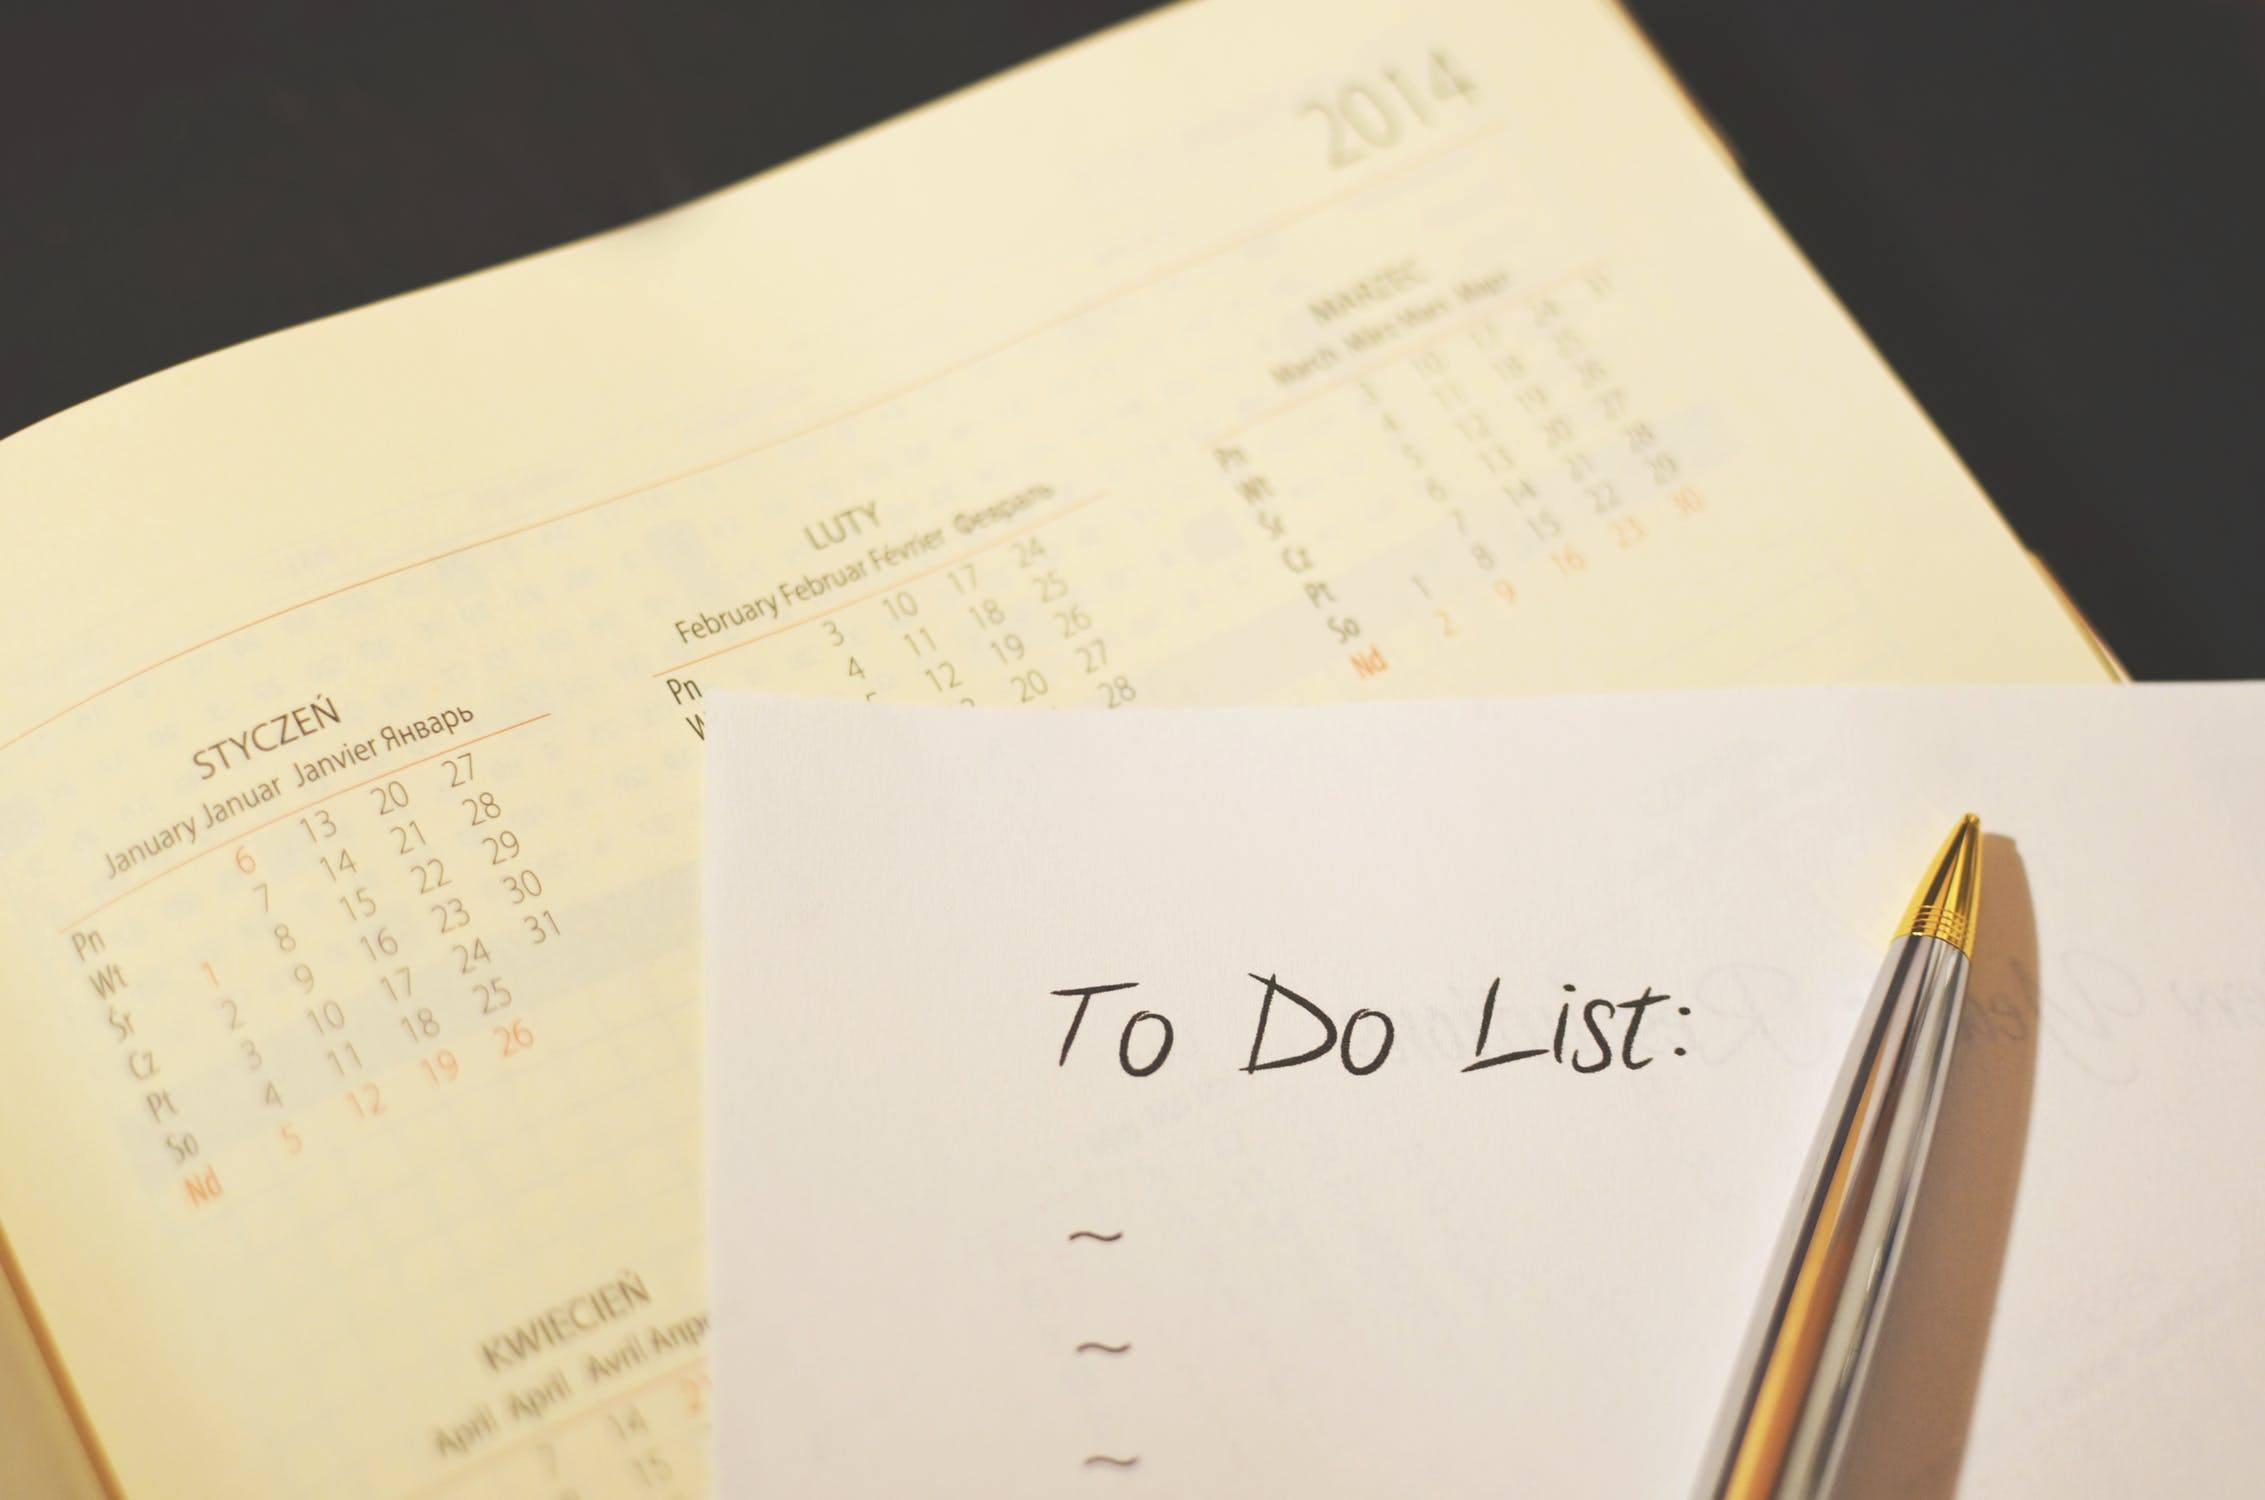 Use your to-do list as a guide to making your action list. In this way, you aim to accomplish more than just meager daily tasks.